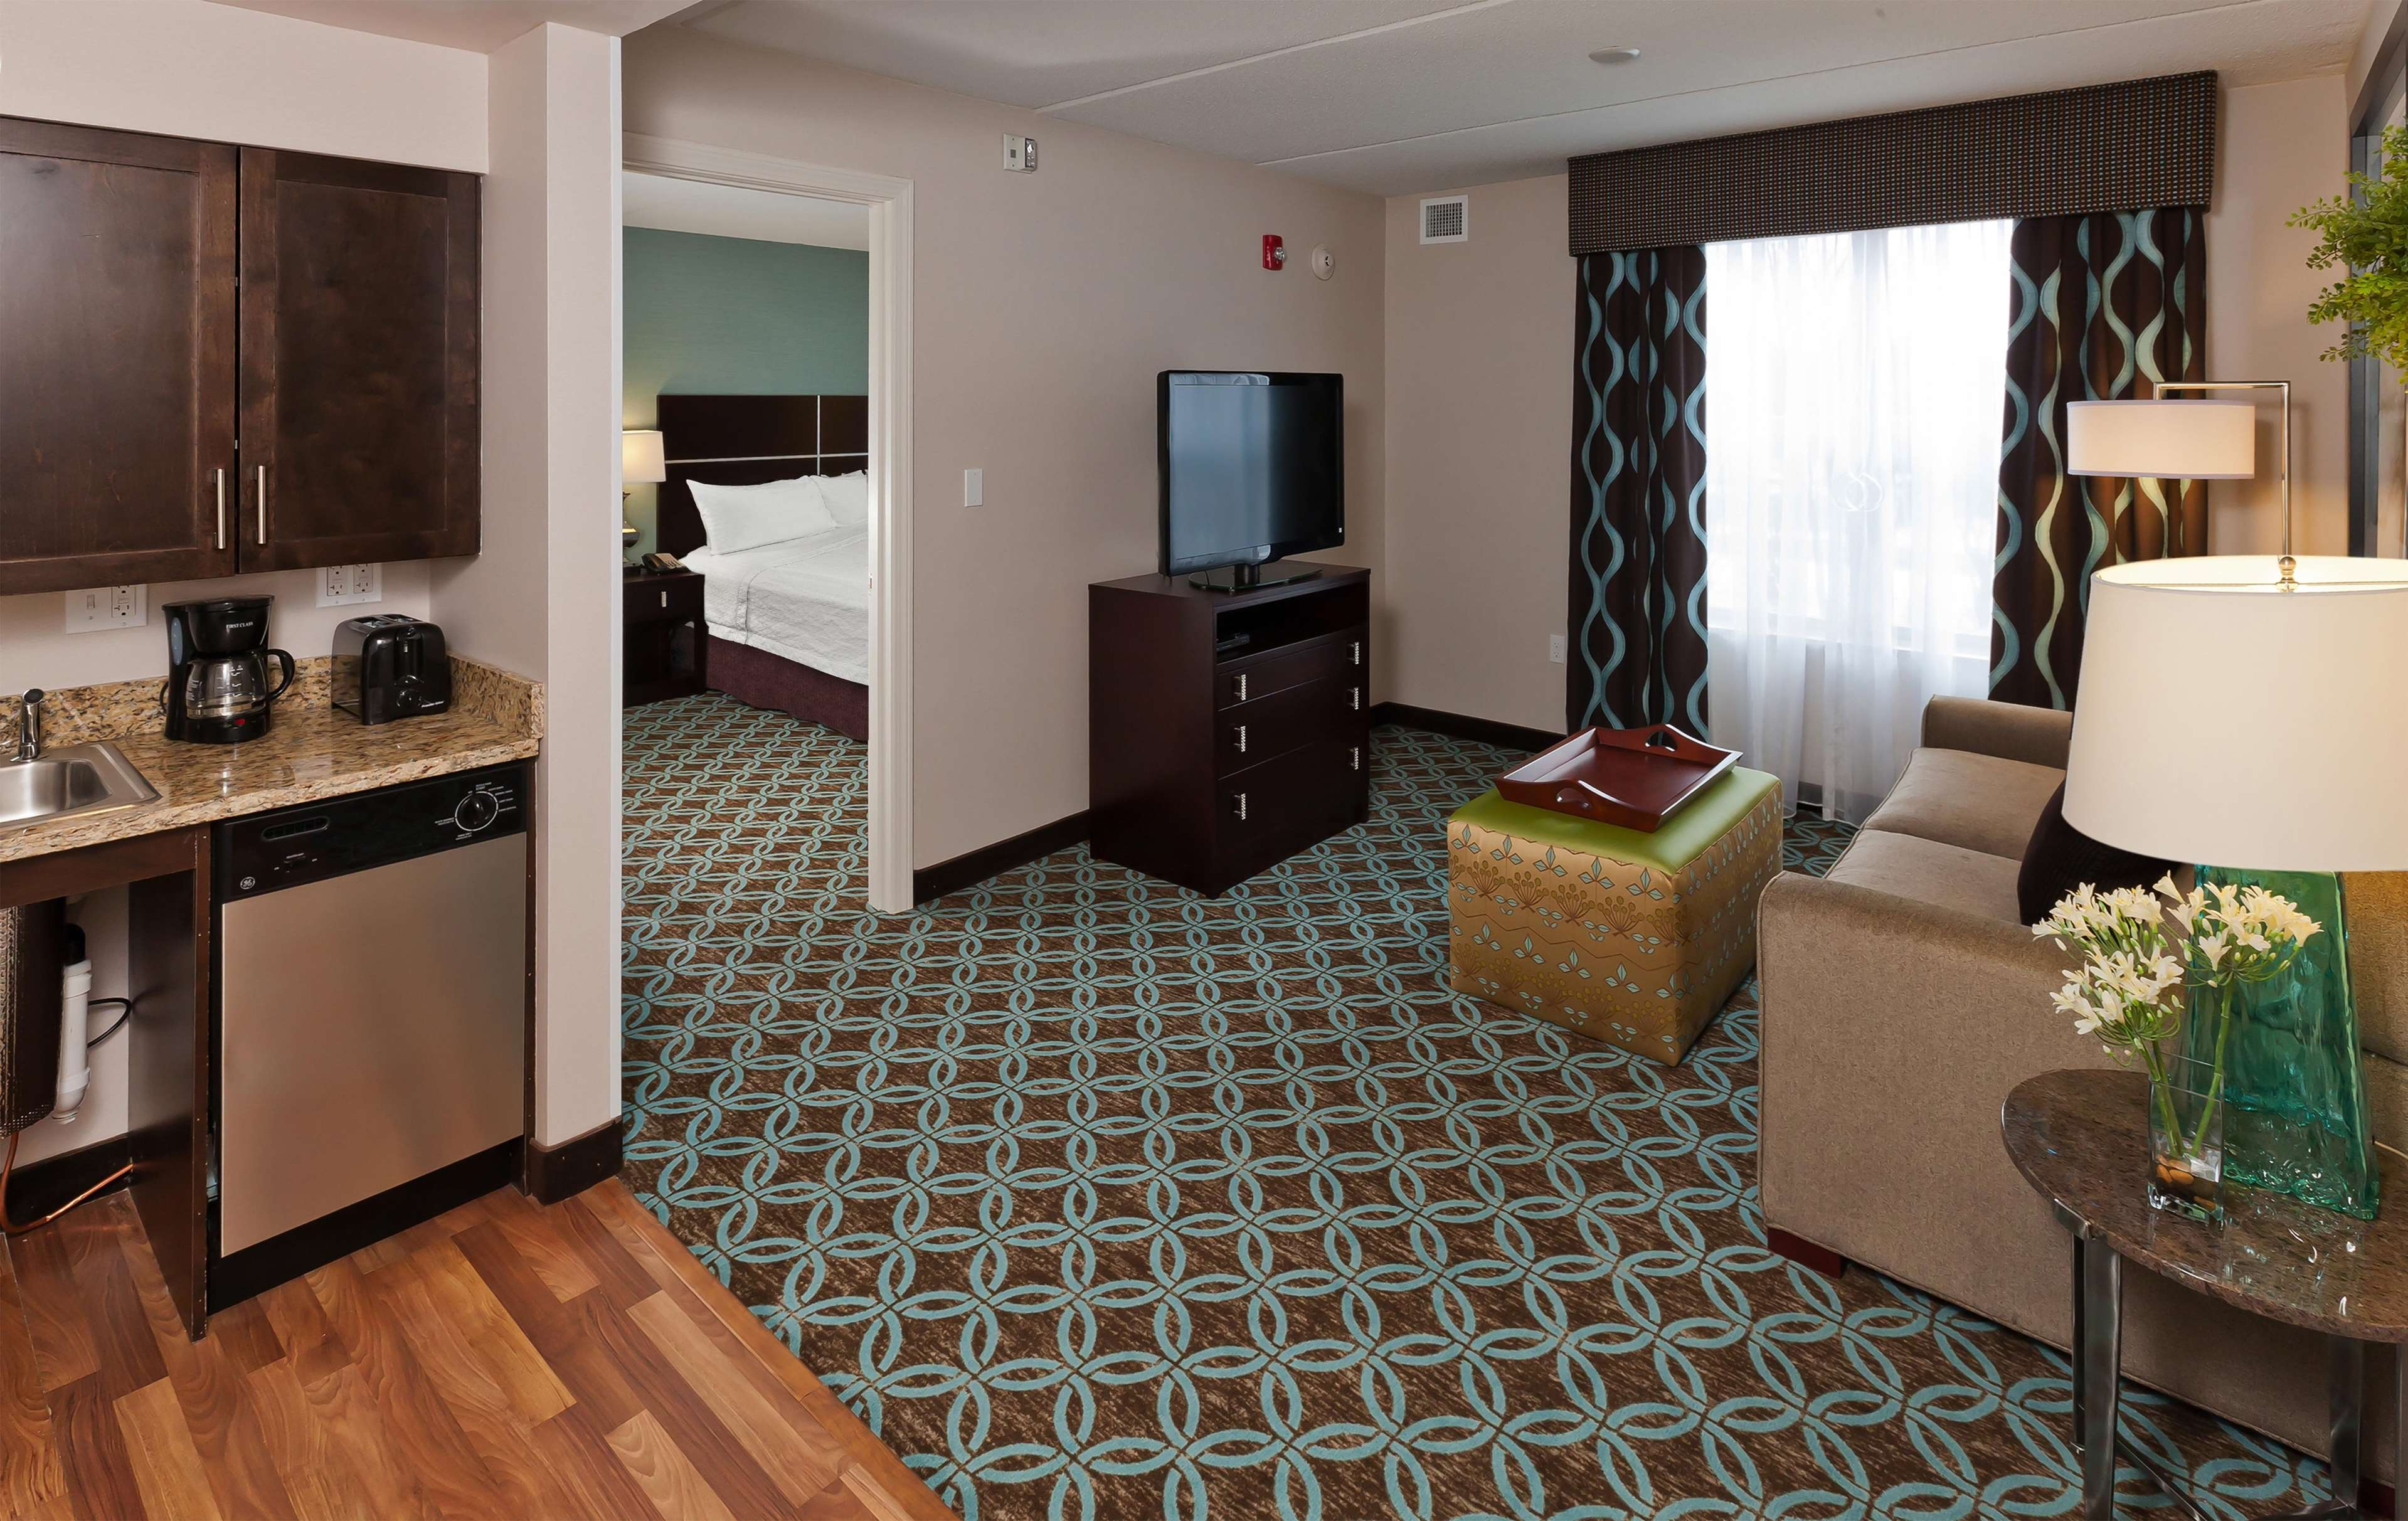 Homewood Suites by Hilton Boston/Canton, MA image 25